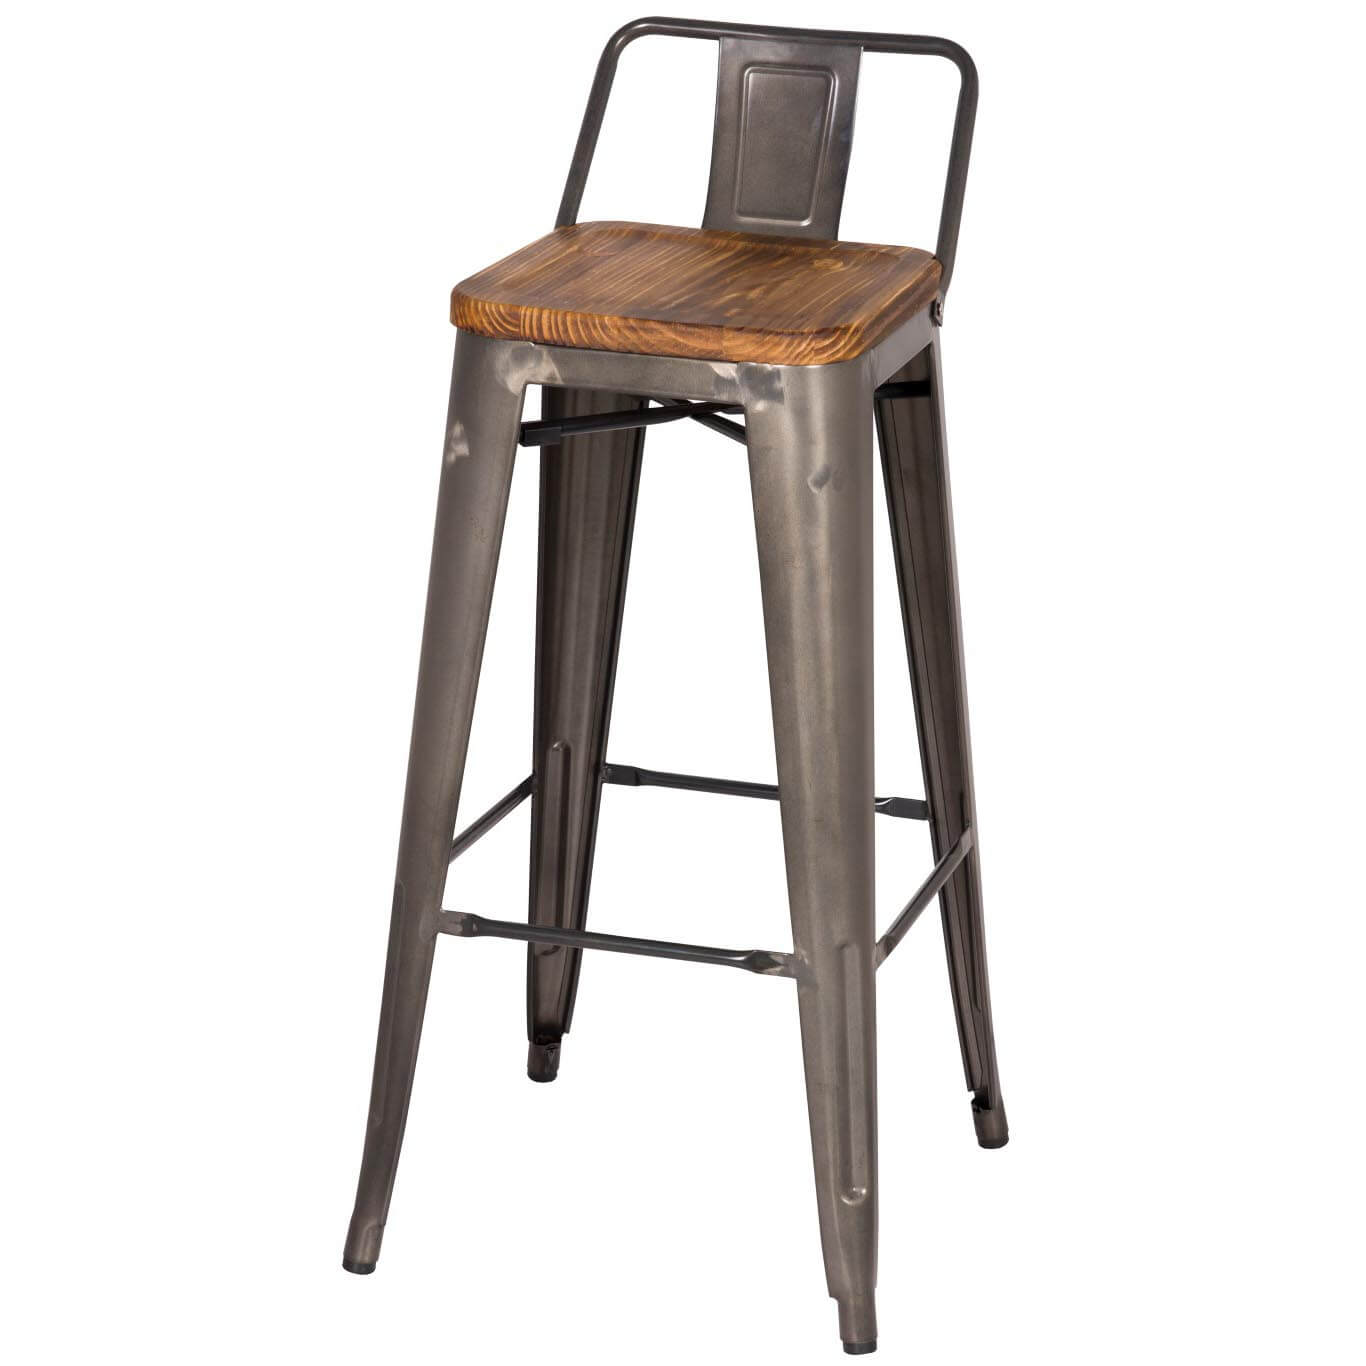 metropolis low back bar stool wood seat gunmetal set of  buy  - metropolis low back bar stool wood seat gunmetal set of  buy online atbest price  sohomod